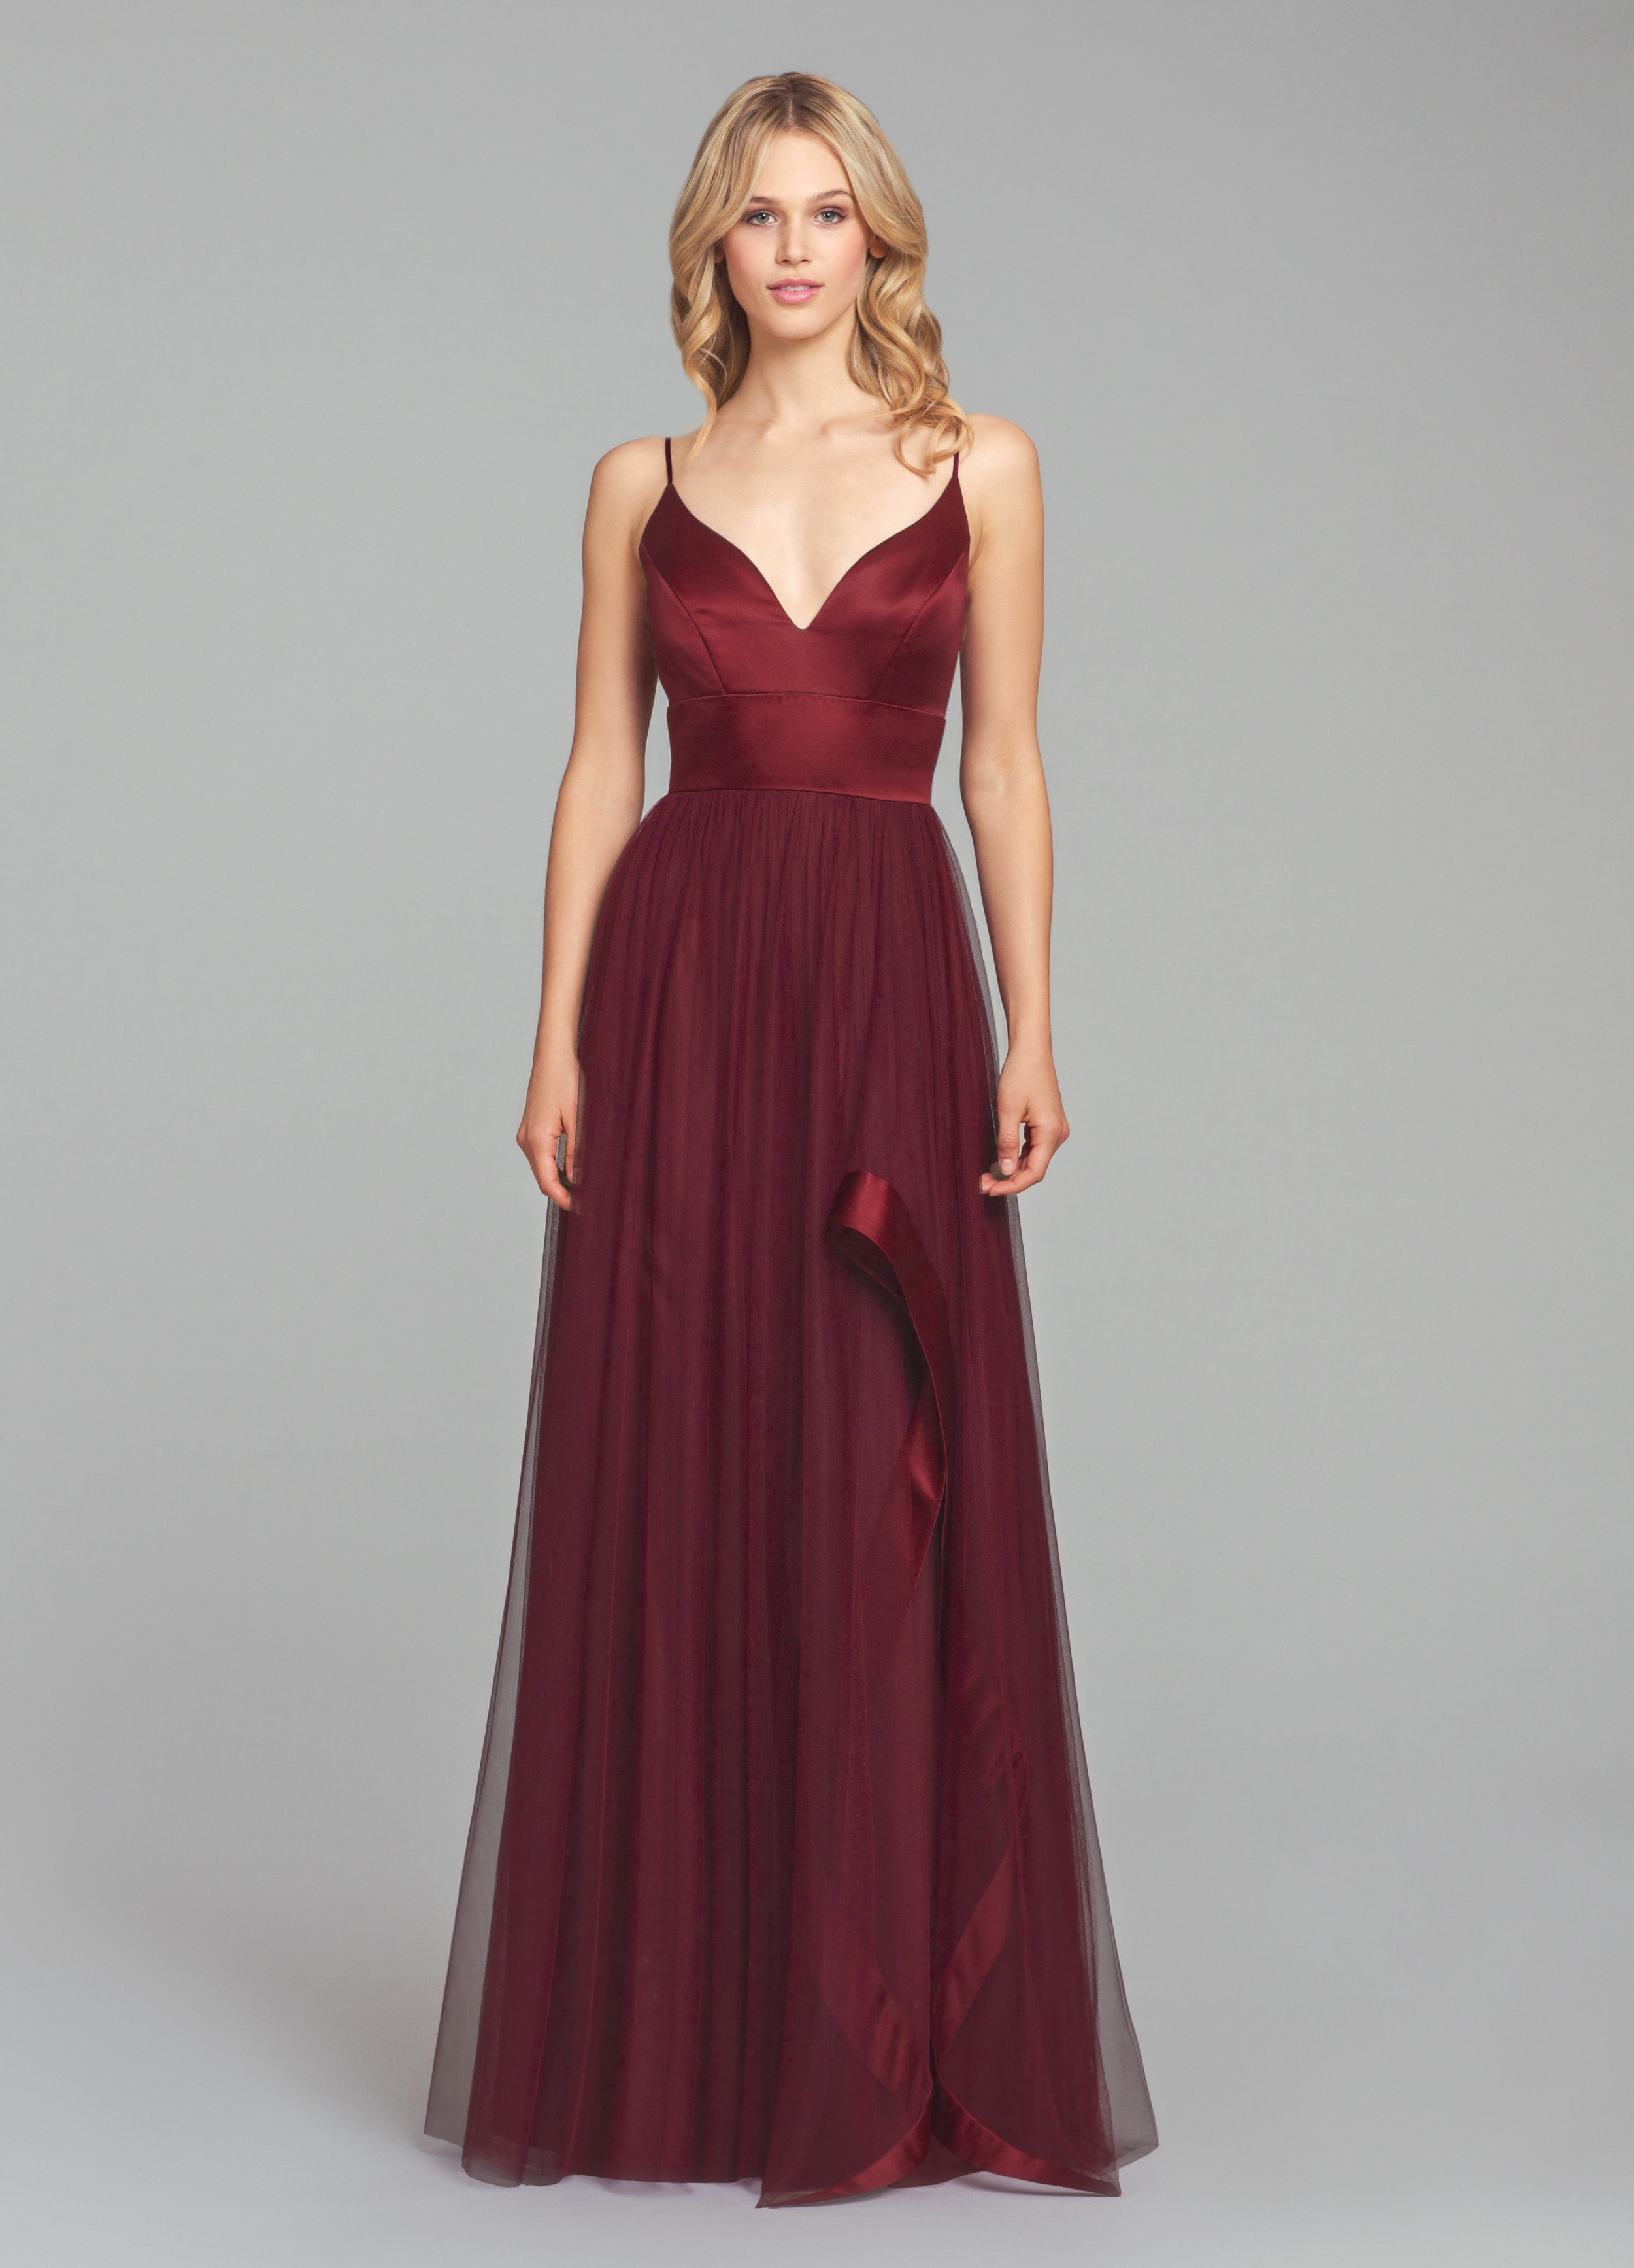 Hayley Paige Occasions Bridesmaids Style 5856 in burgundy satin bodice and English net tulle cascade detail in burgundy